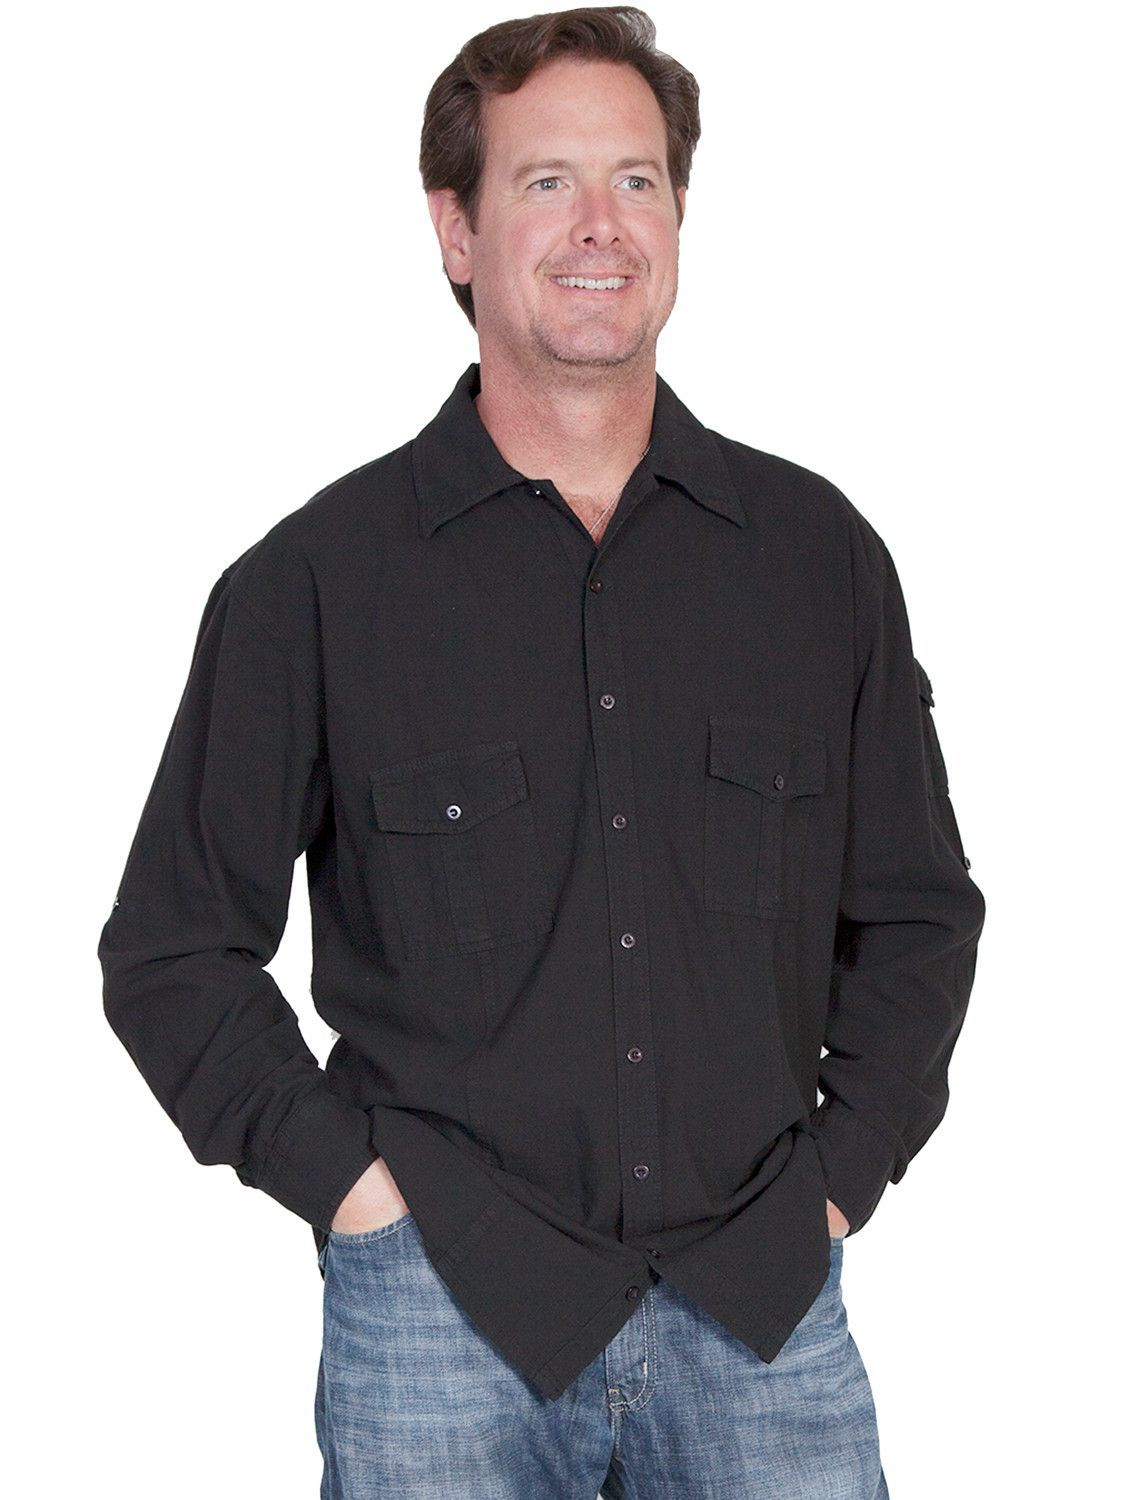 Scully Cantina Mens Black 100% Cotton Casual Sport Shirt